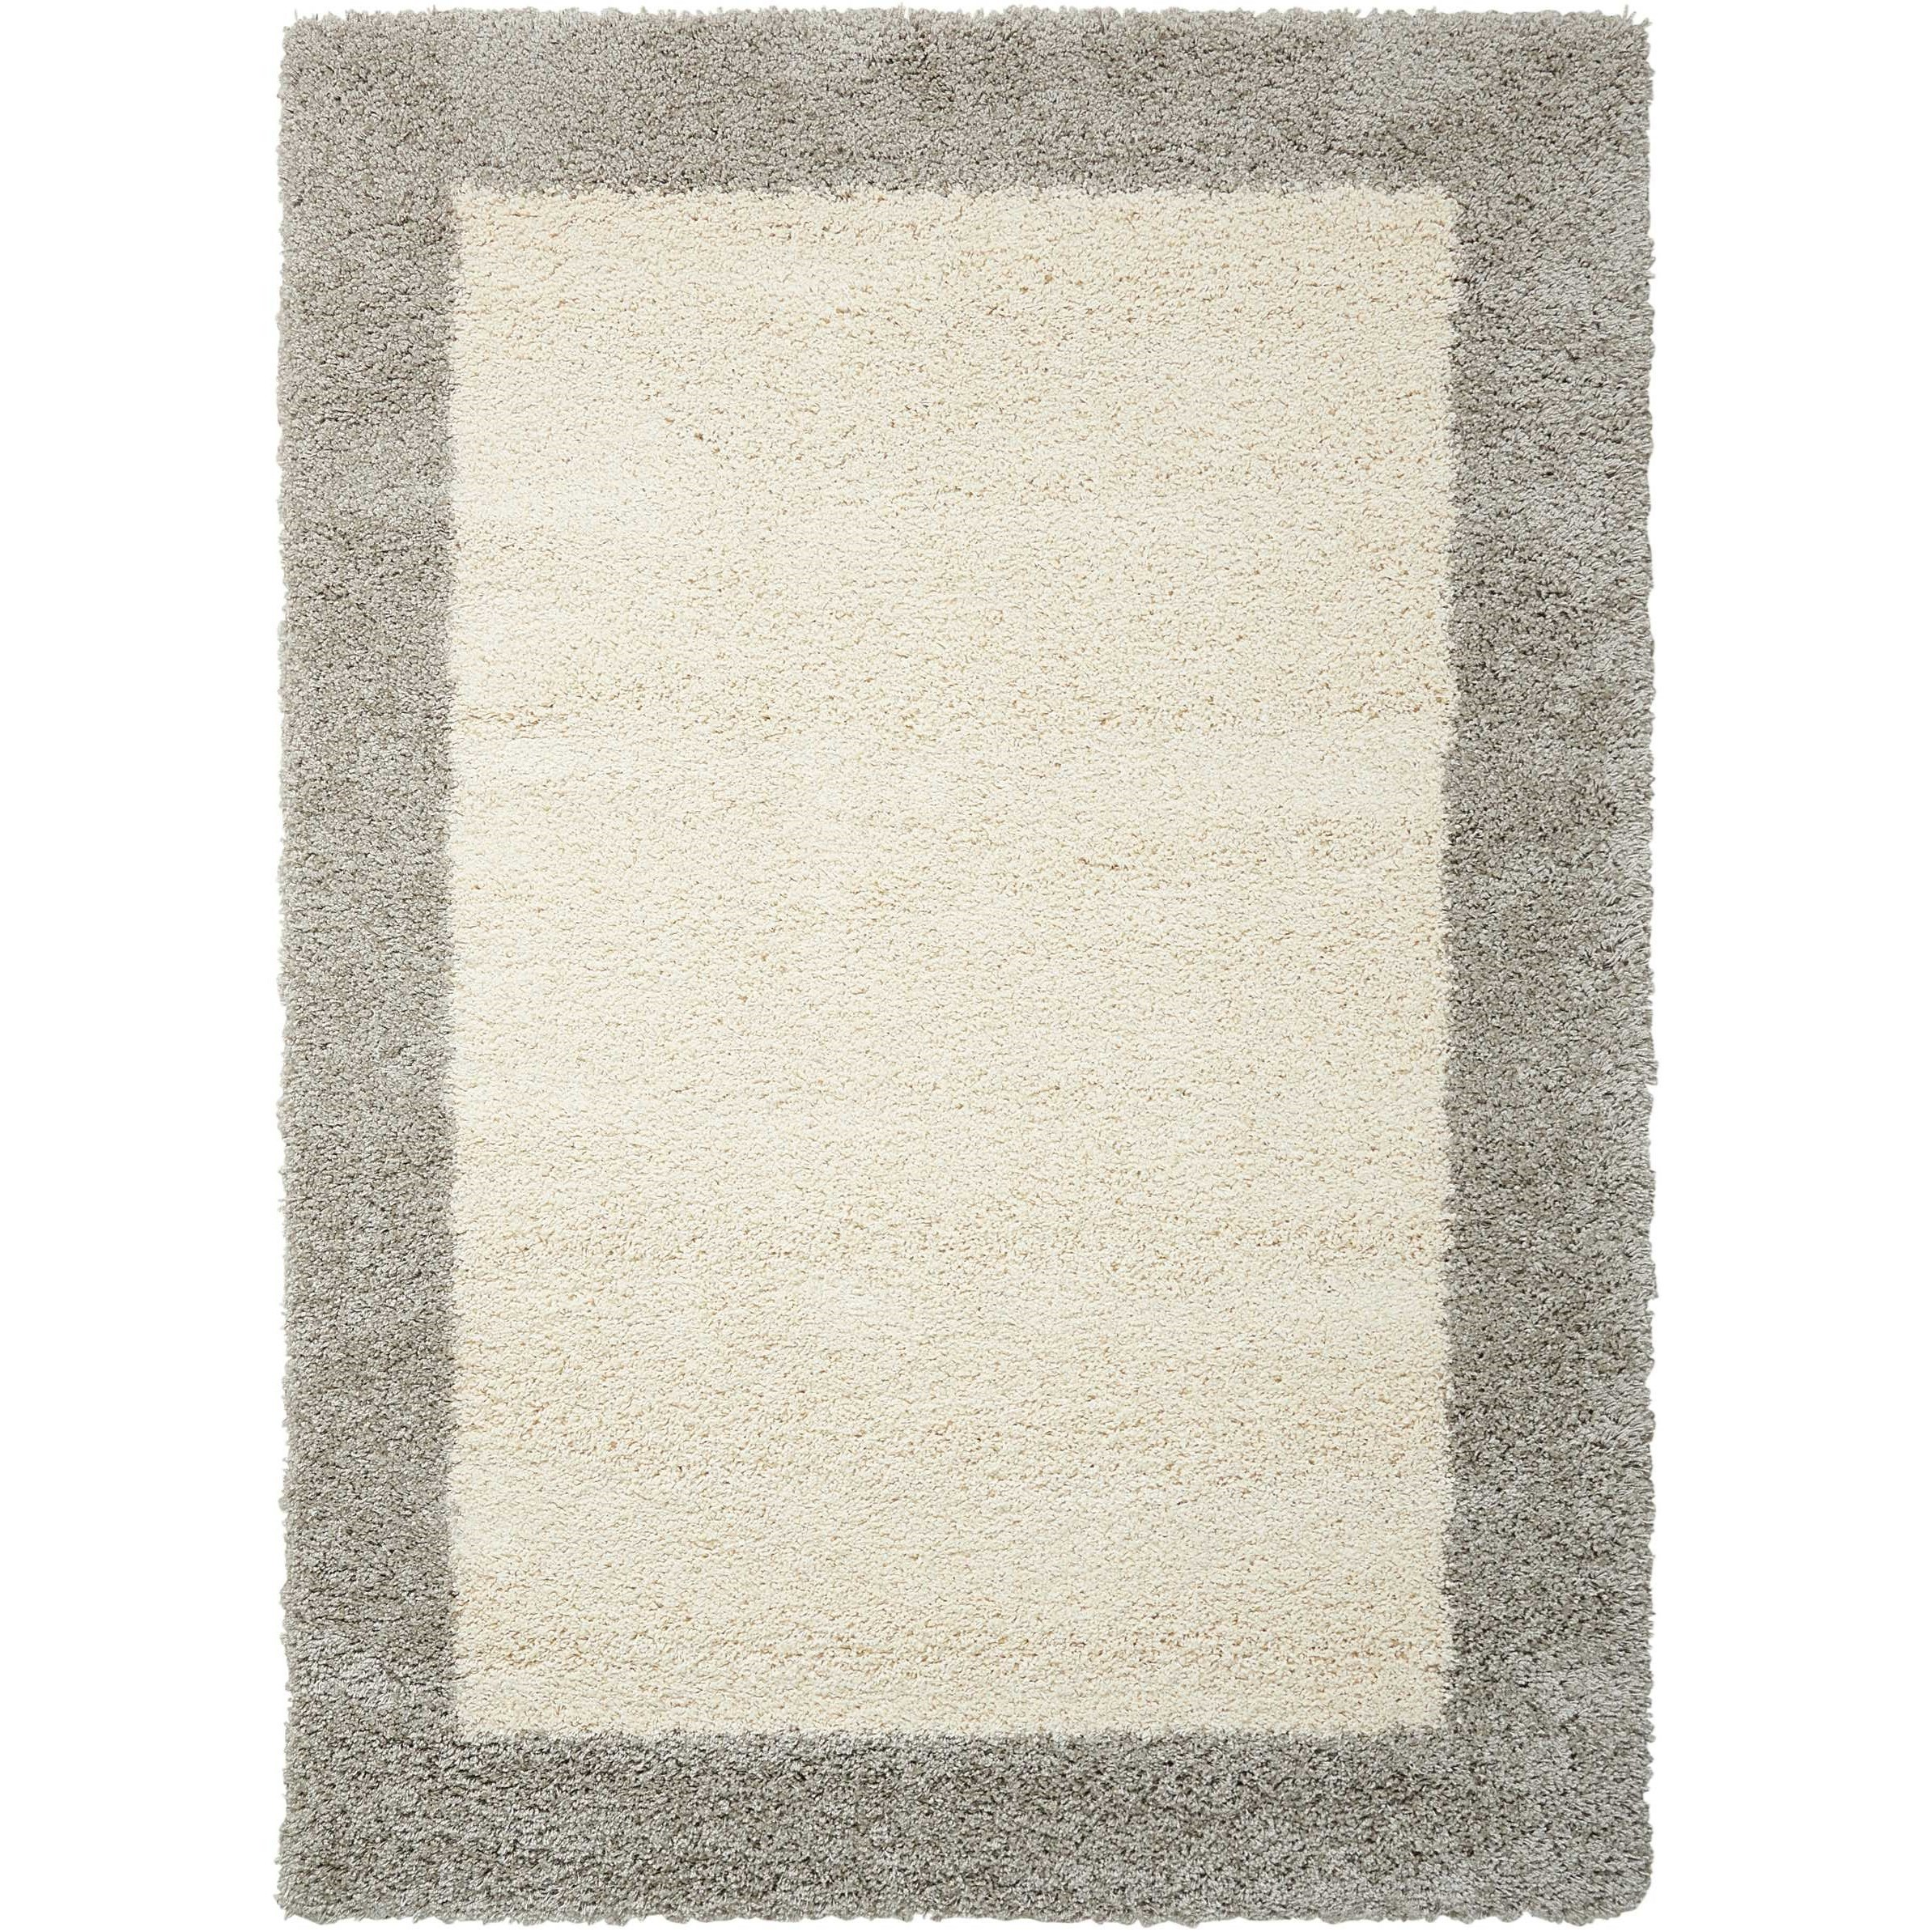 "Amore 3'11"" x 5'11"" Ivory/Silver Rectangle Rug by Nourison at Sprintz Furniture"